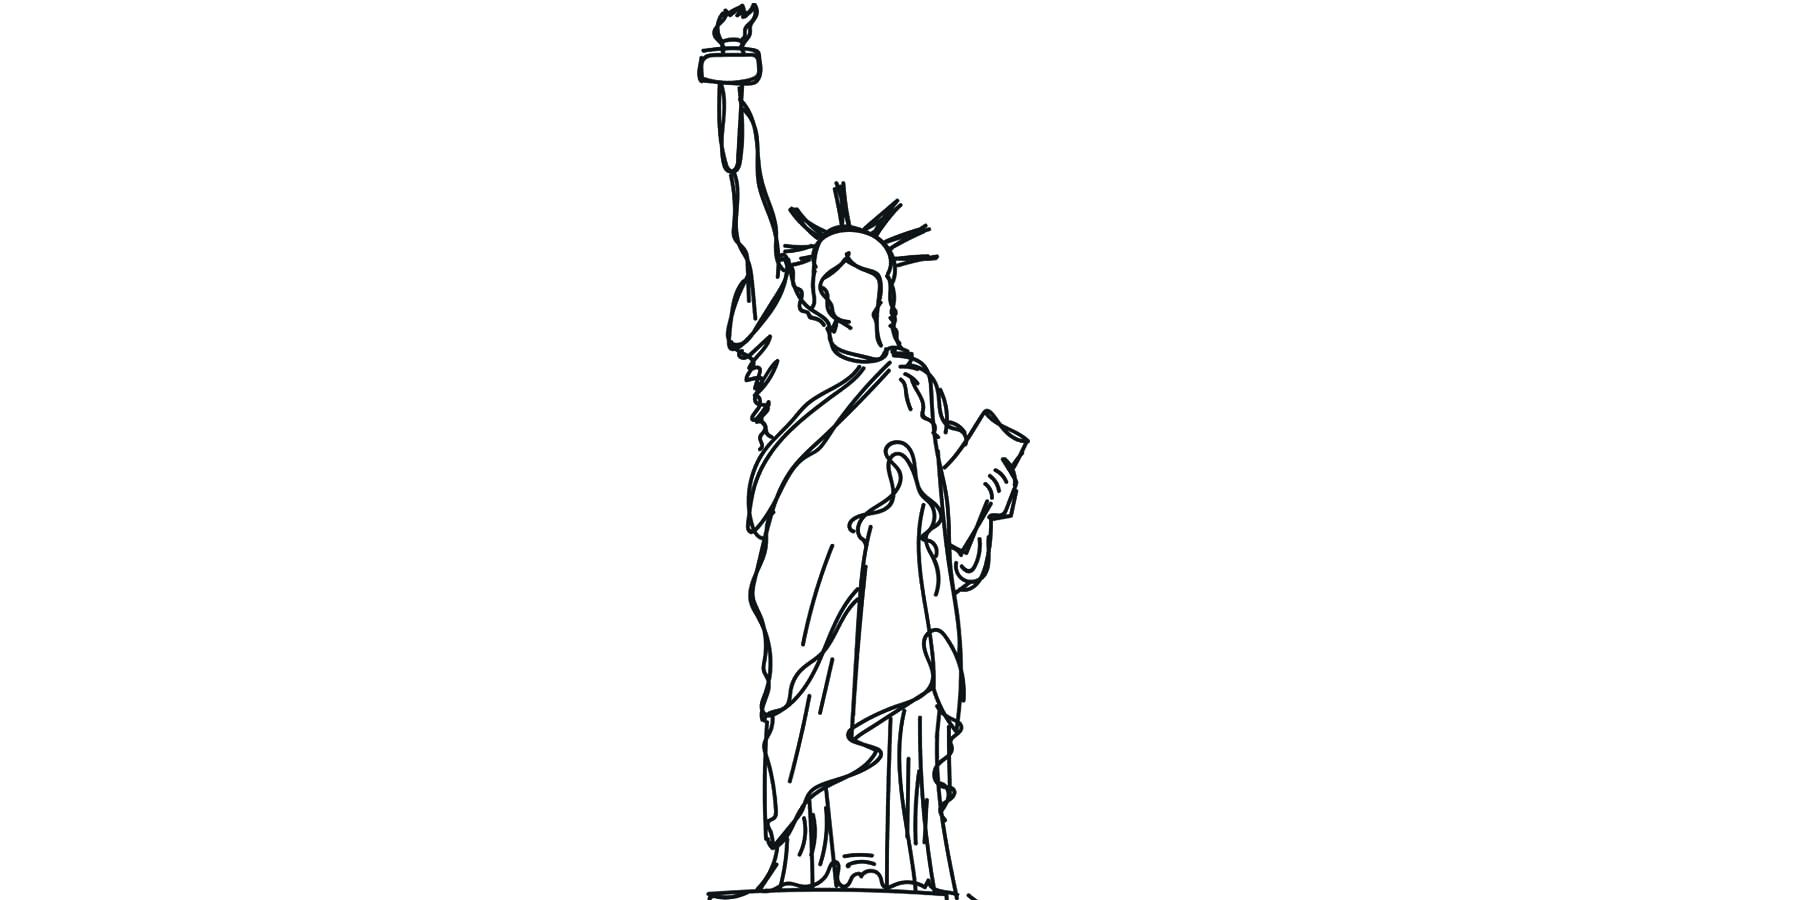 1800x900 Coloring Statue Of Liberty Coloring Funny Vector Illustration